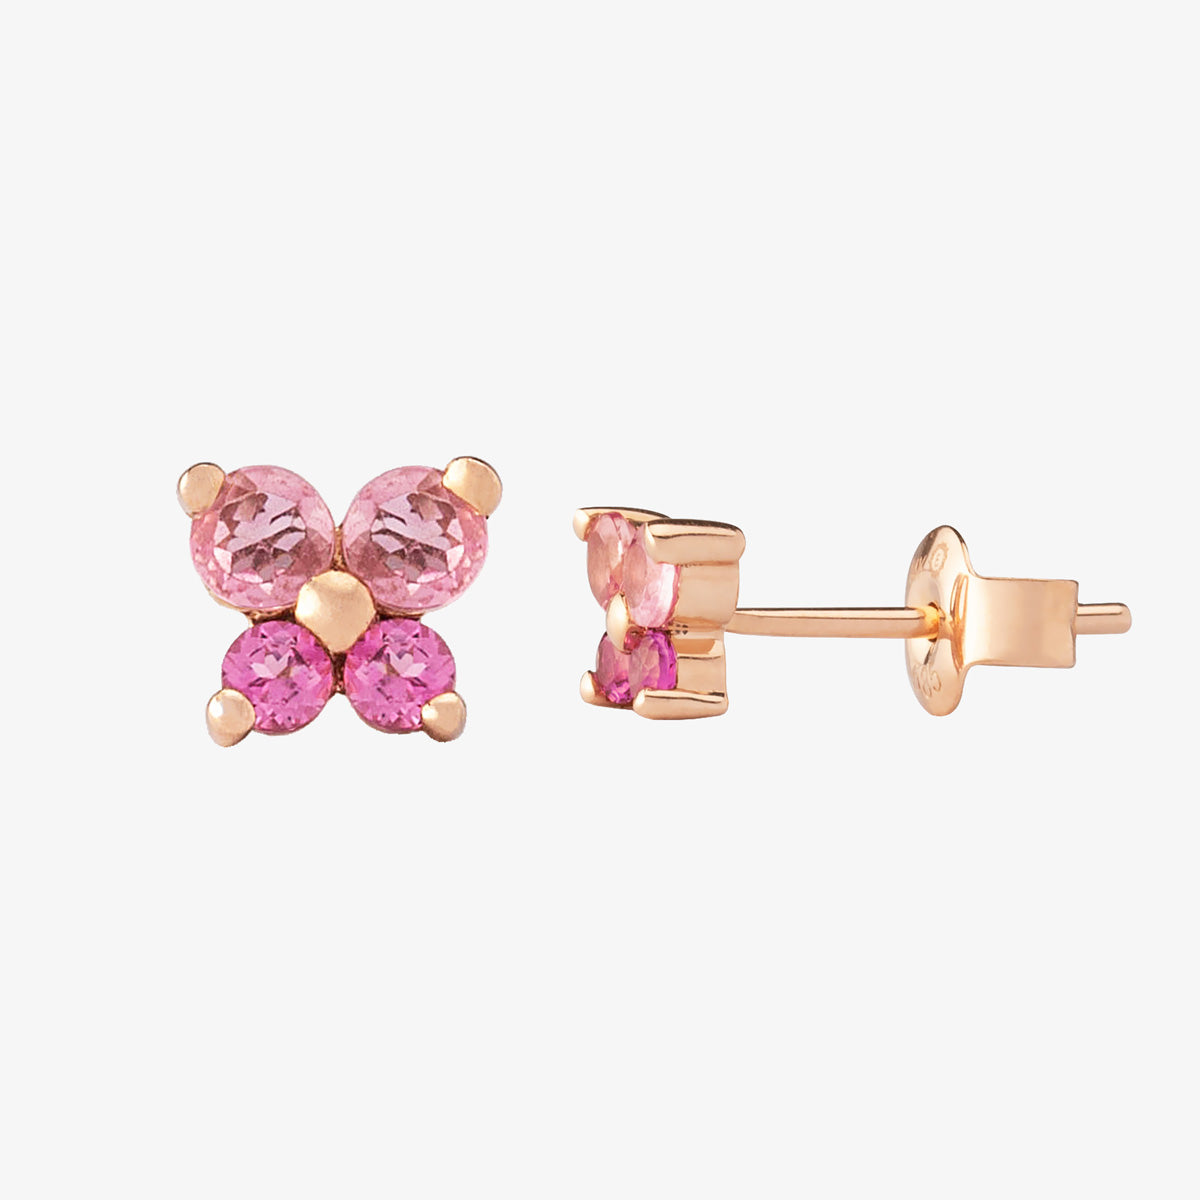 Unique Pink Tourmaline Stud Earring In Solid Gold - estellacollection